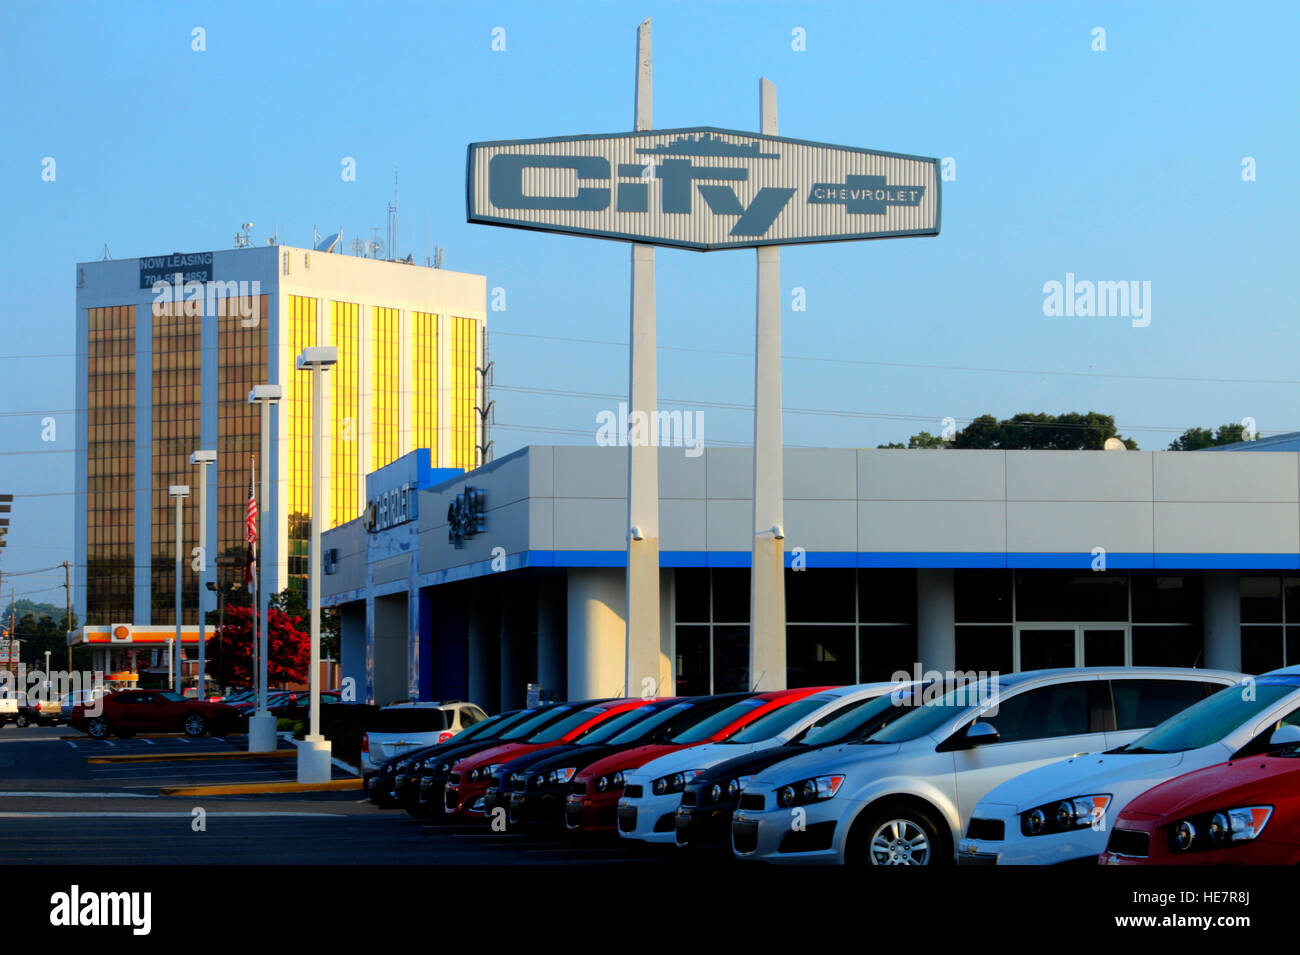 Nice City Chevrolet In Charlotte NC   Stock Image